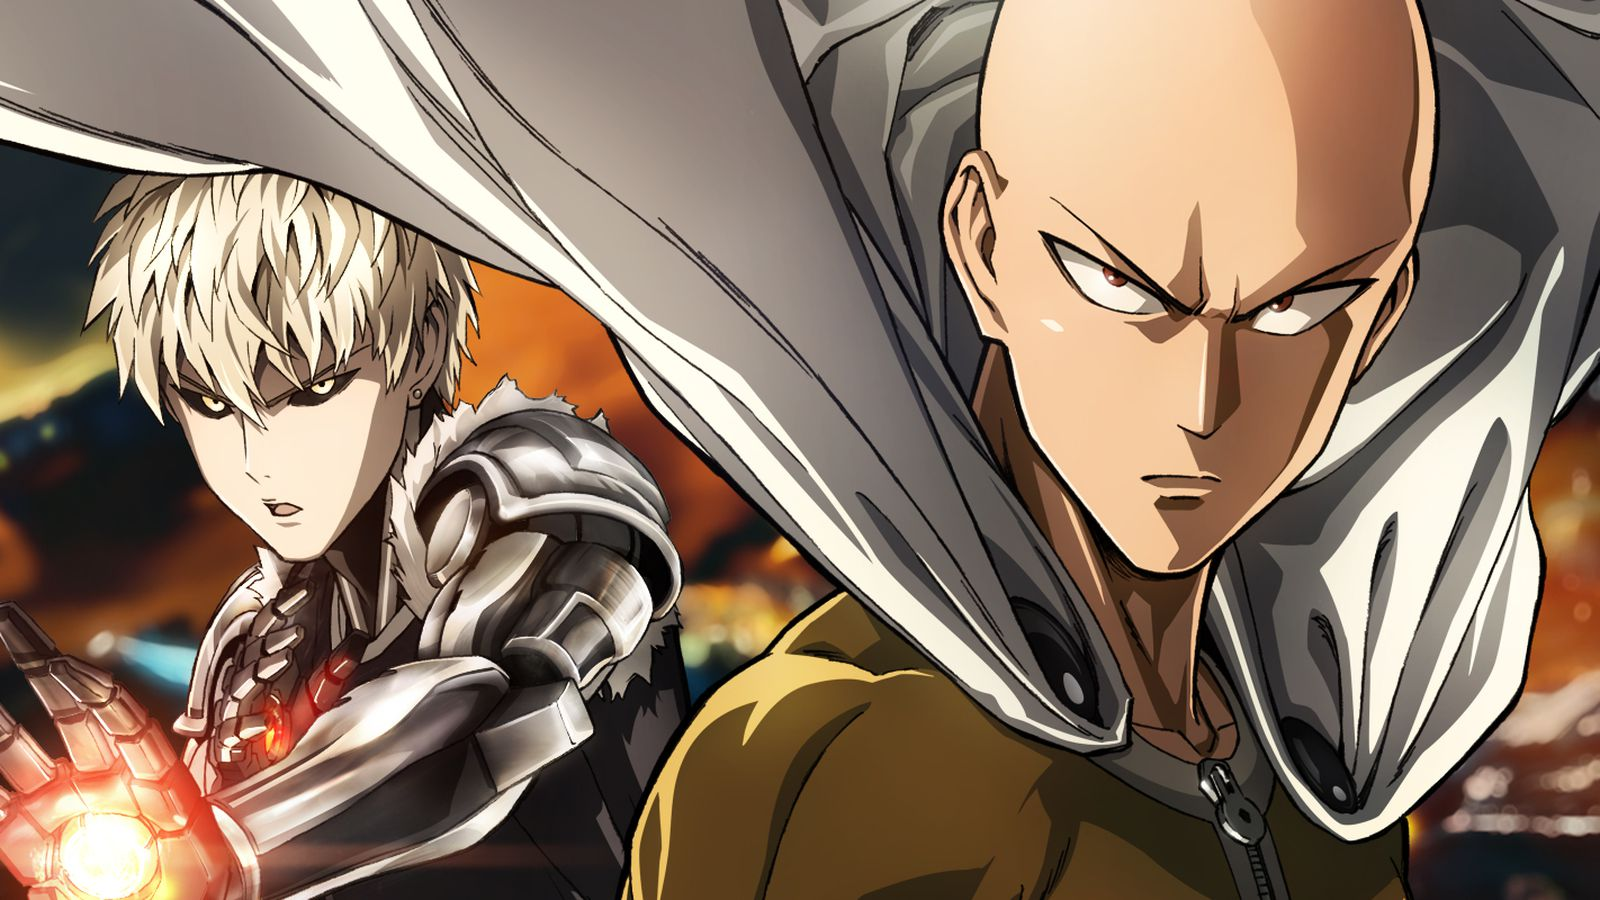 Hunter Wallpaper Hd One Of Anime S Most Popular Series One Punch Man Is Now